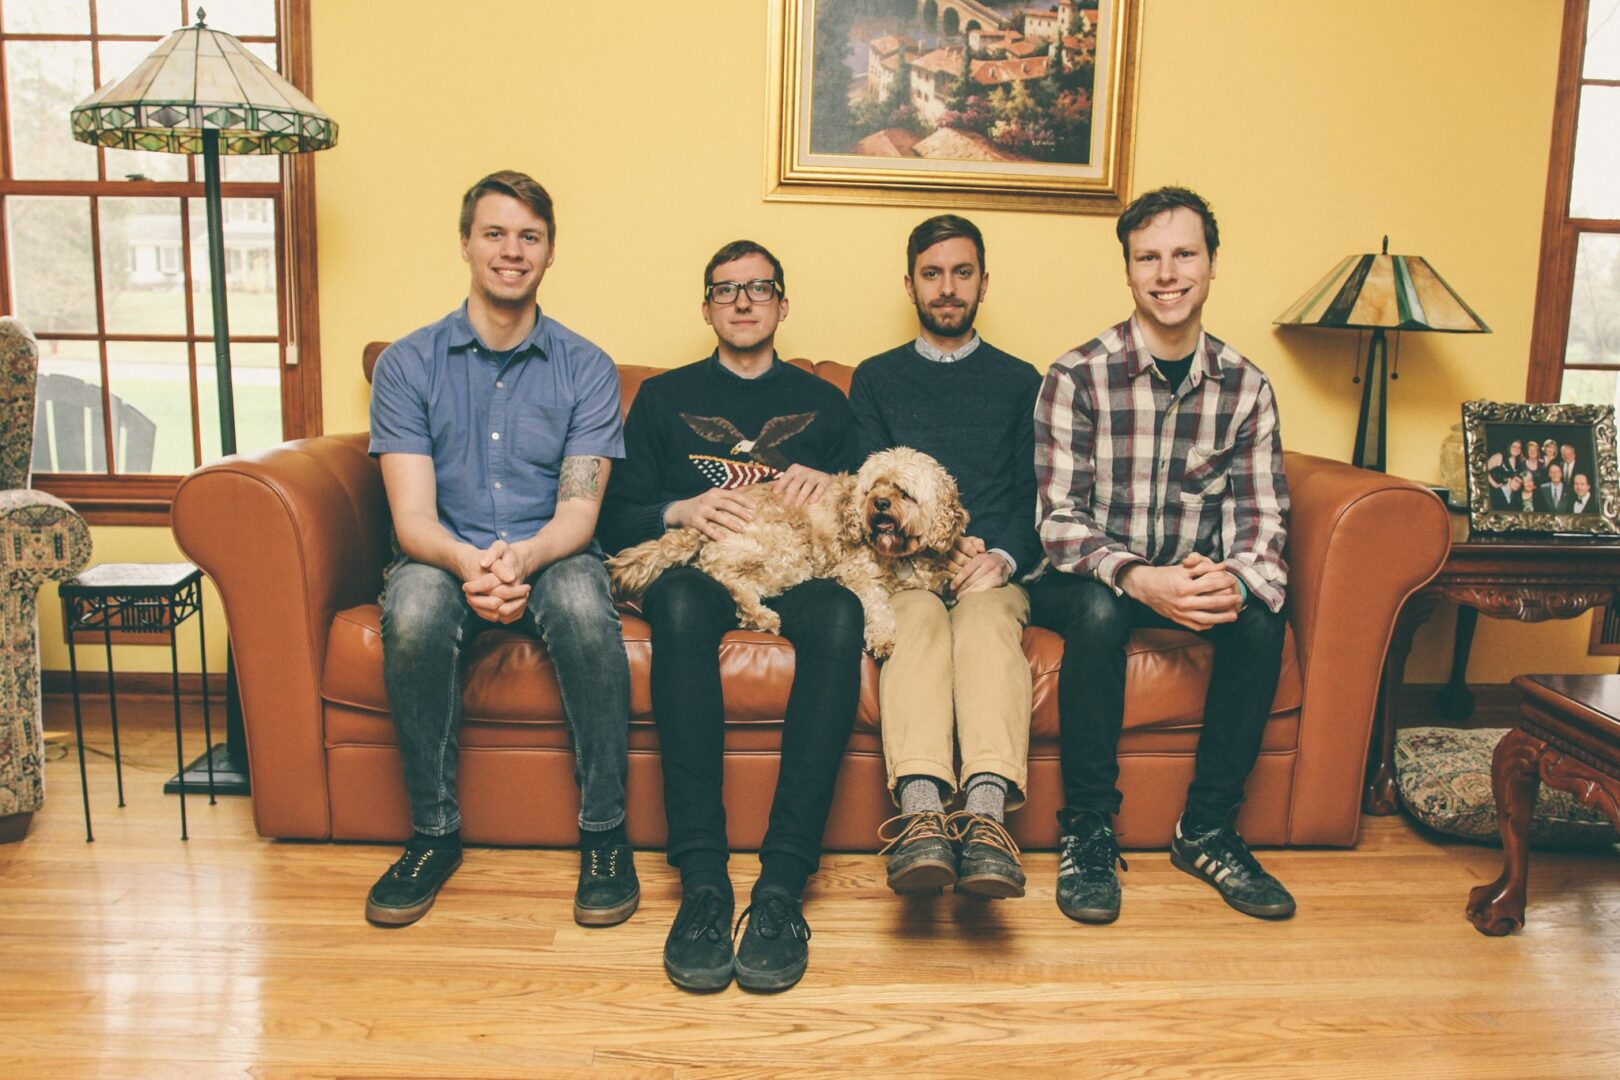 Dowsing Announces Co-Headline U.S. Tour with Free Throw